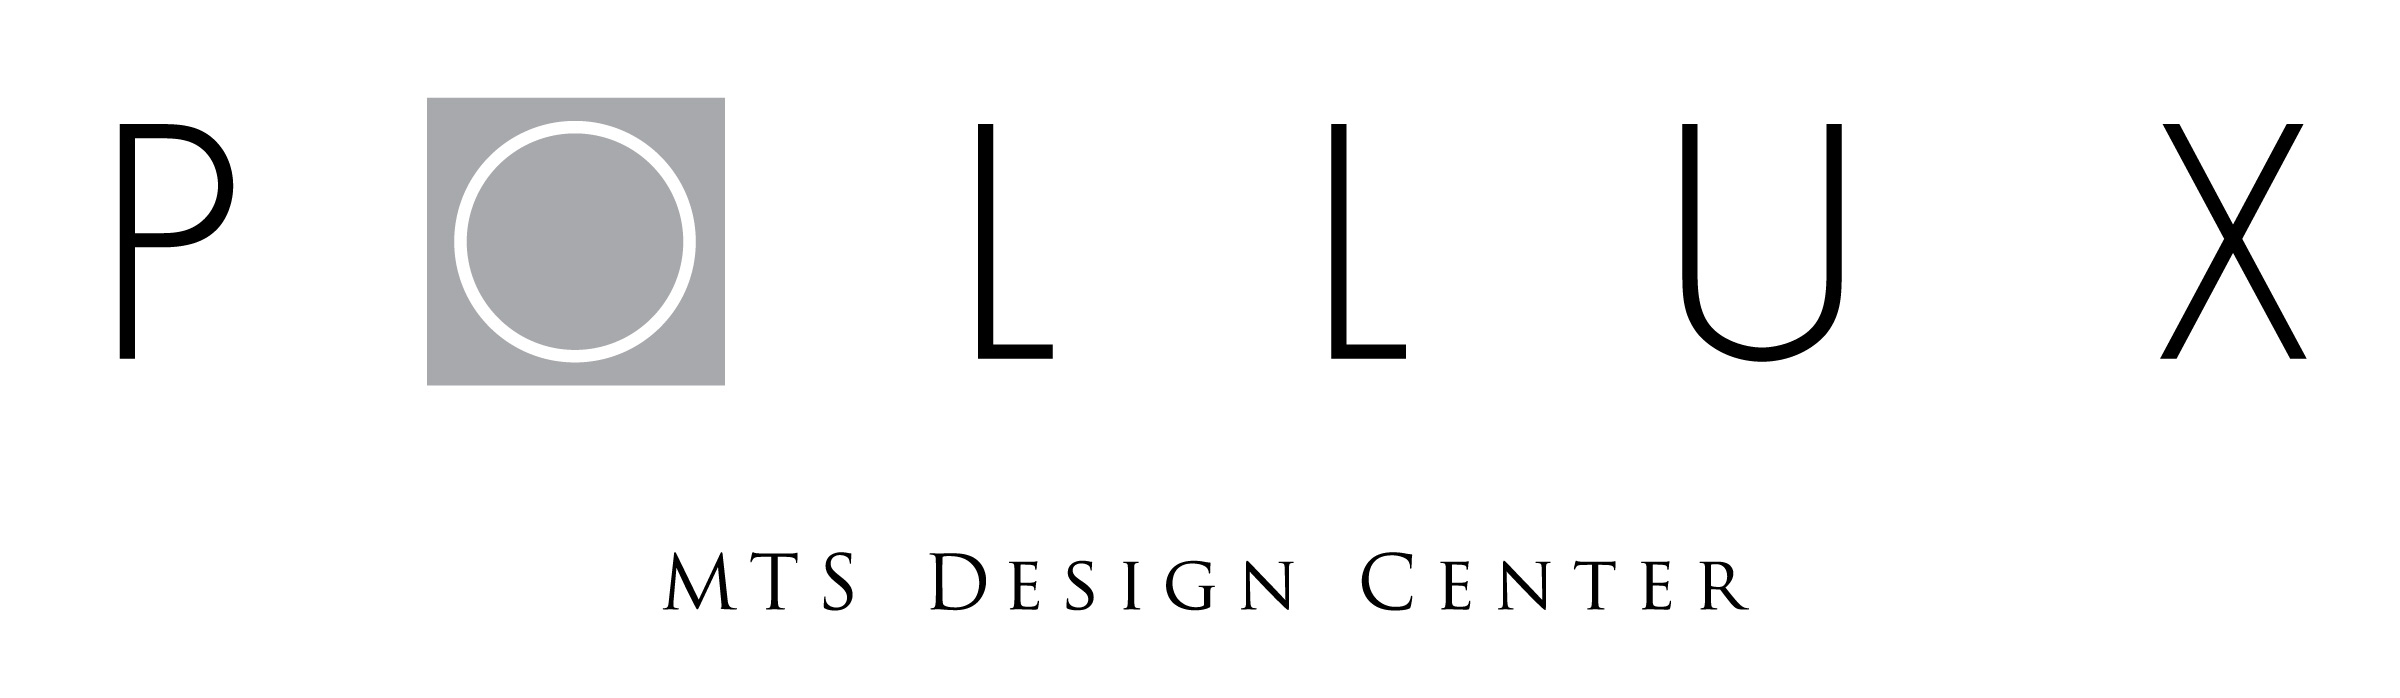 Logo - Pollux Showroom Concepts.jpg